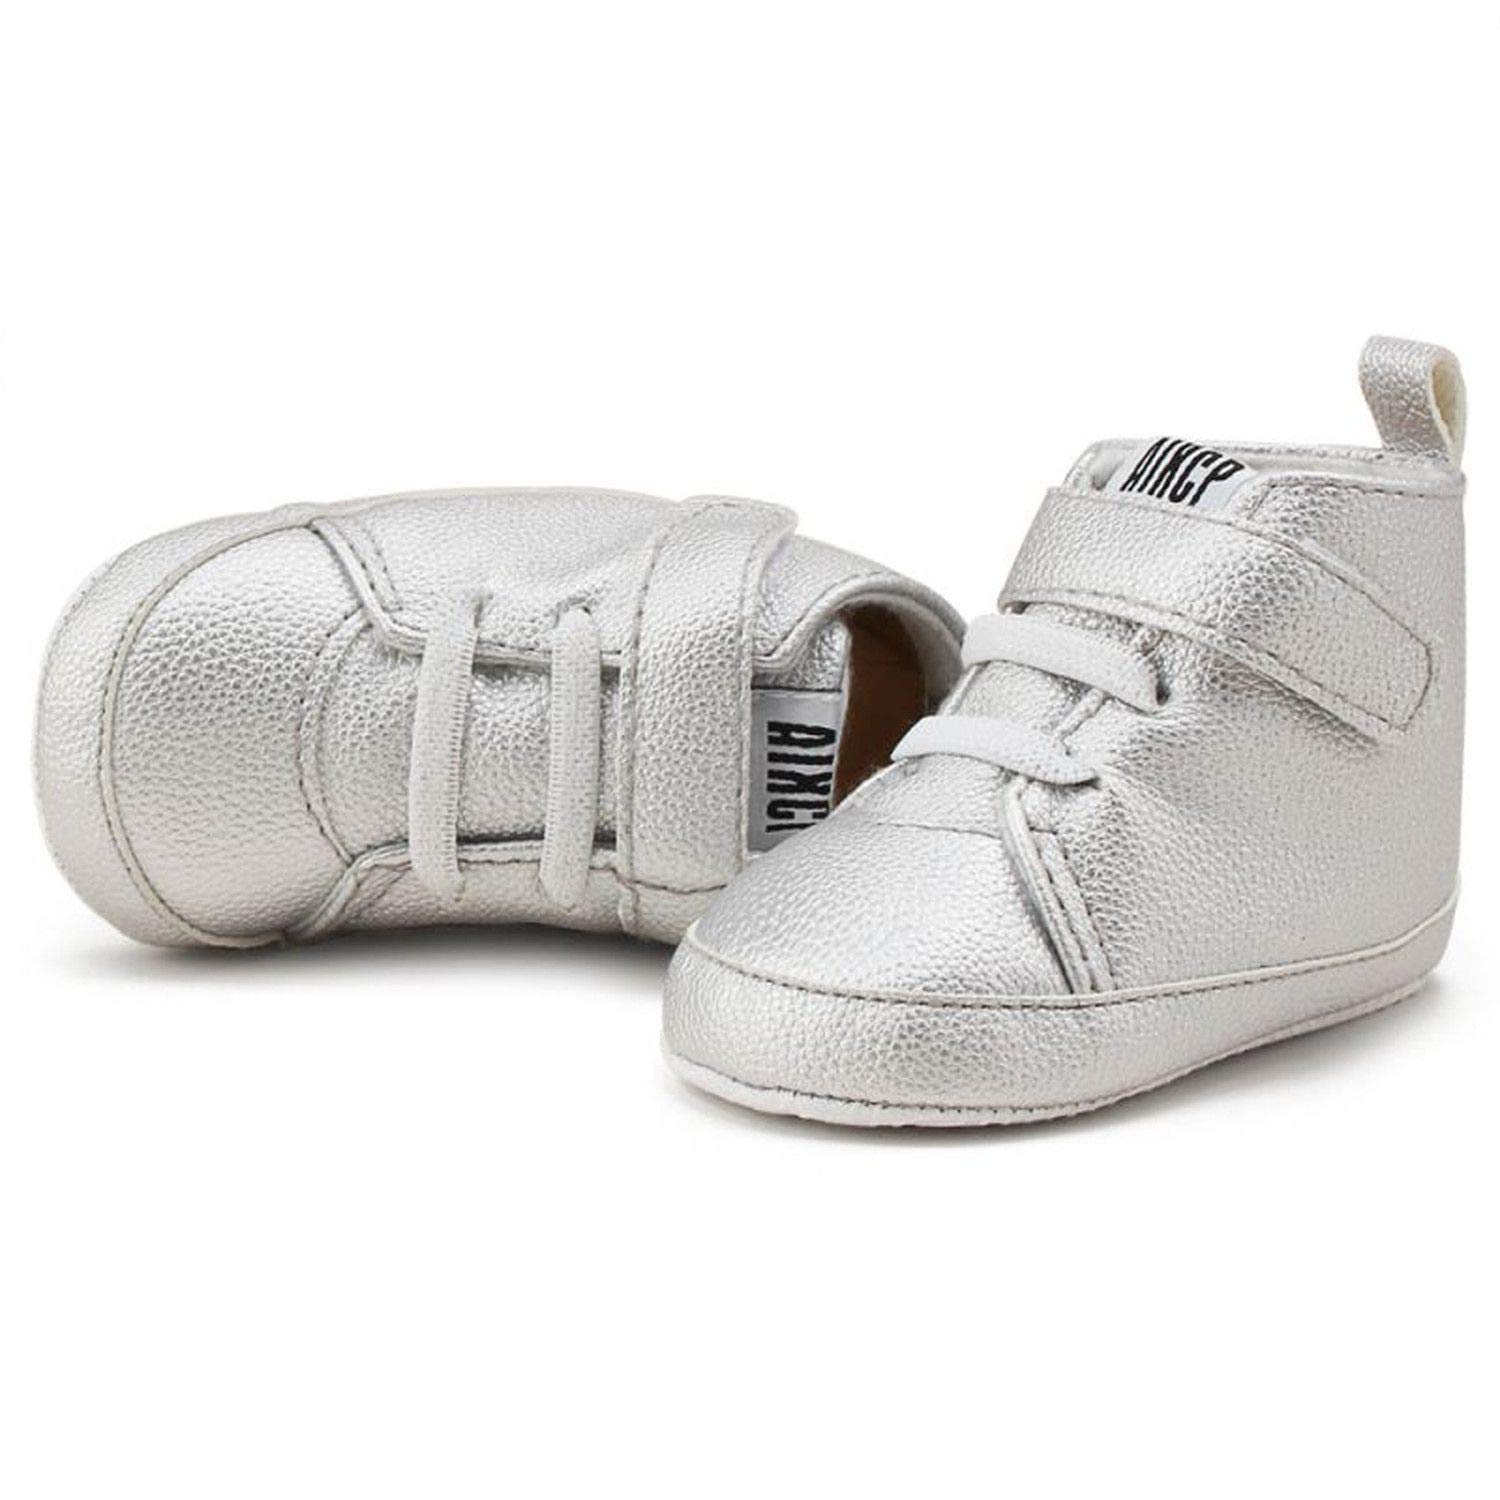 Autumn Winter Baby Pu Shoes Toddler Newborn First Walkers Kids Boy Girl Soft Sole Sneaker 0-12Months